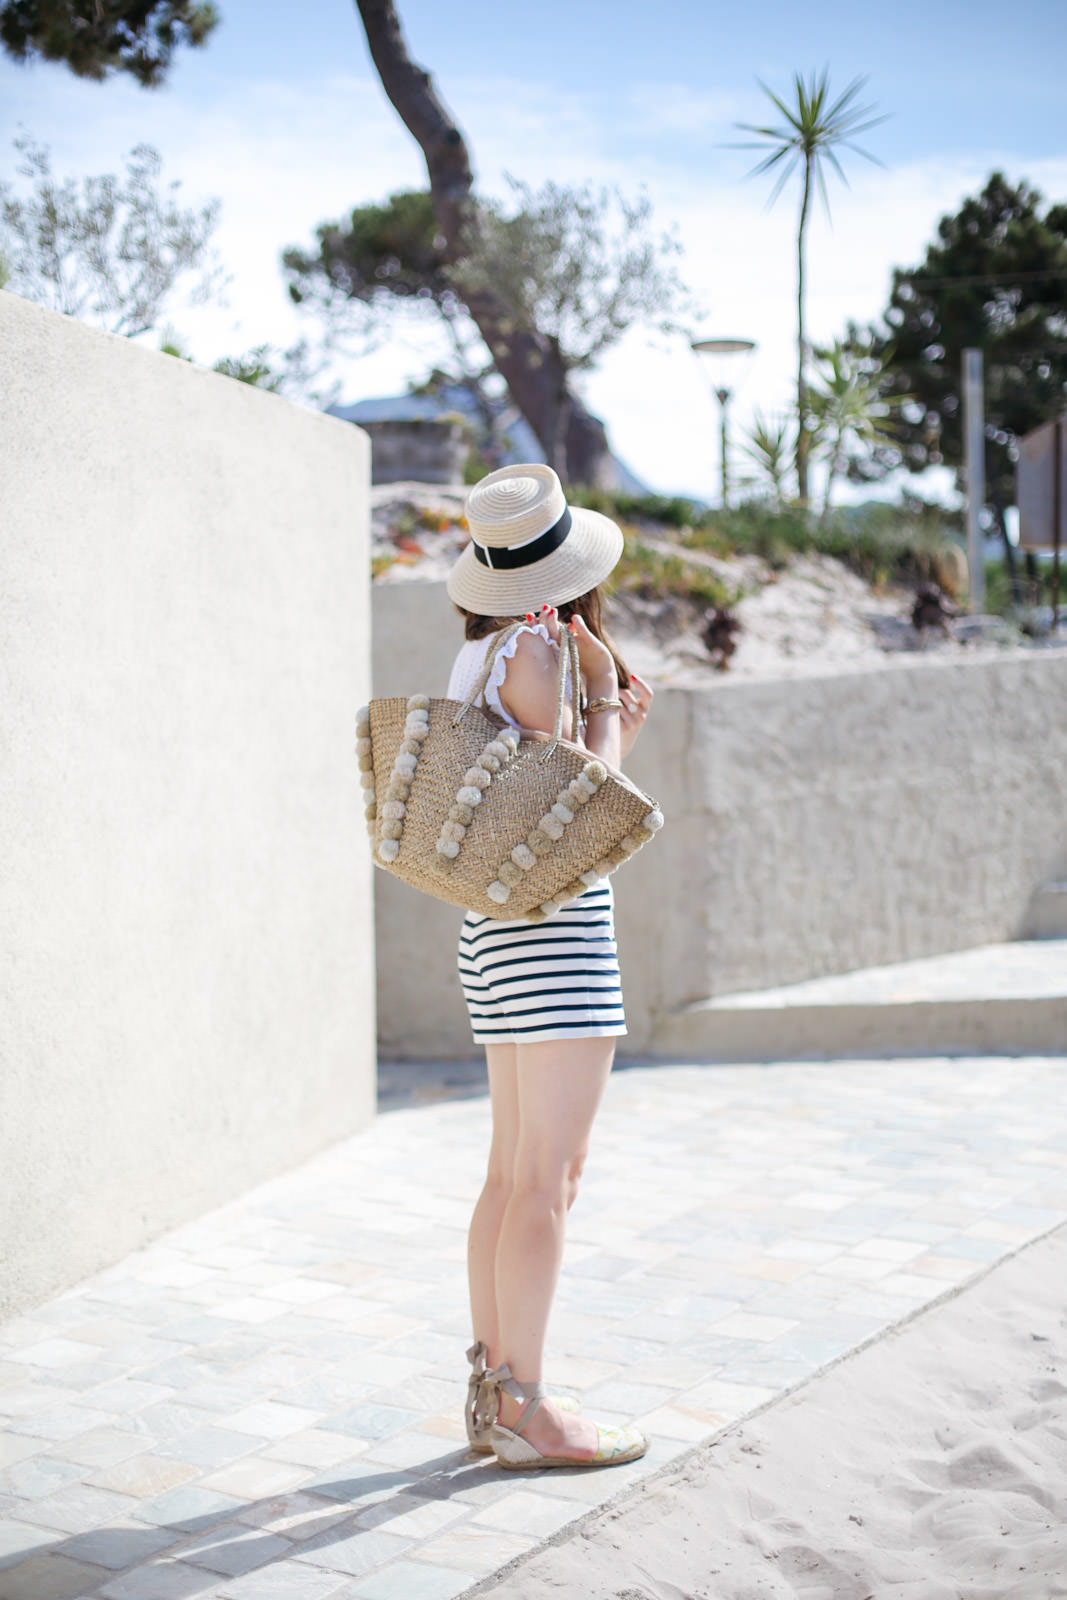 Blog-Mode-And-The-City-Looks-Les-Pieds-Dans-Le-Sable-A-Calvi-4